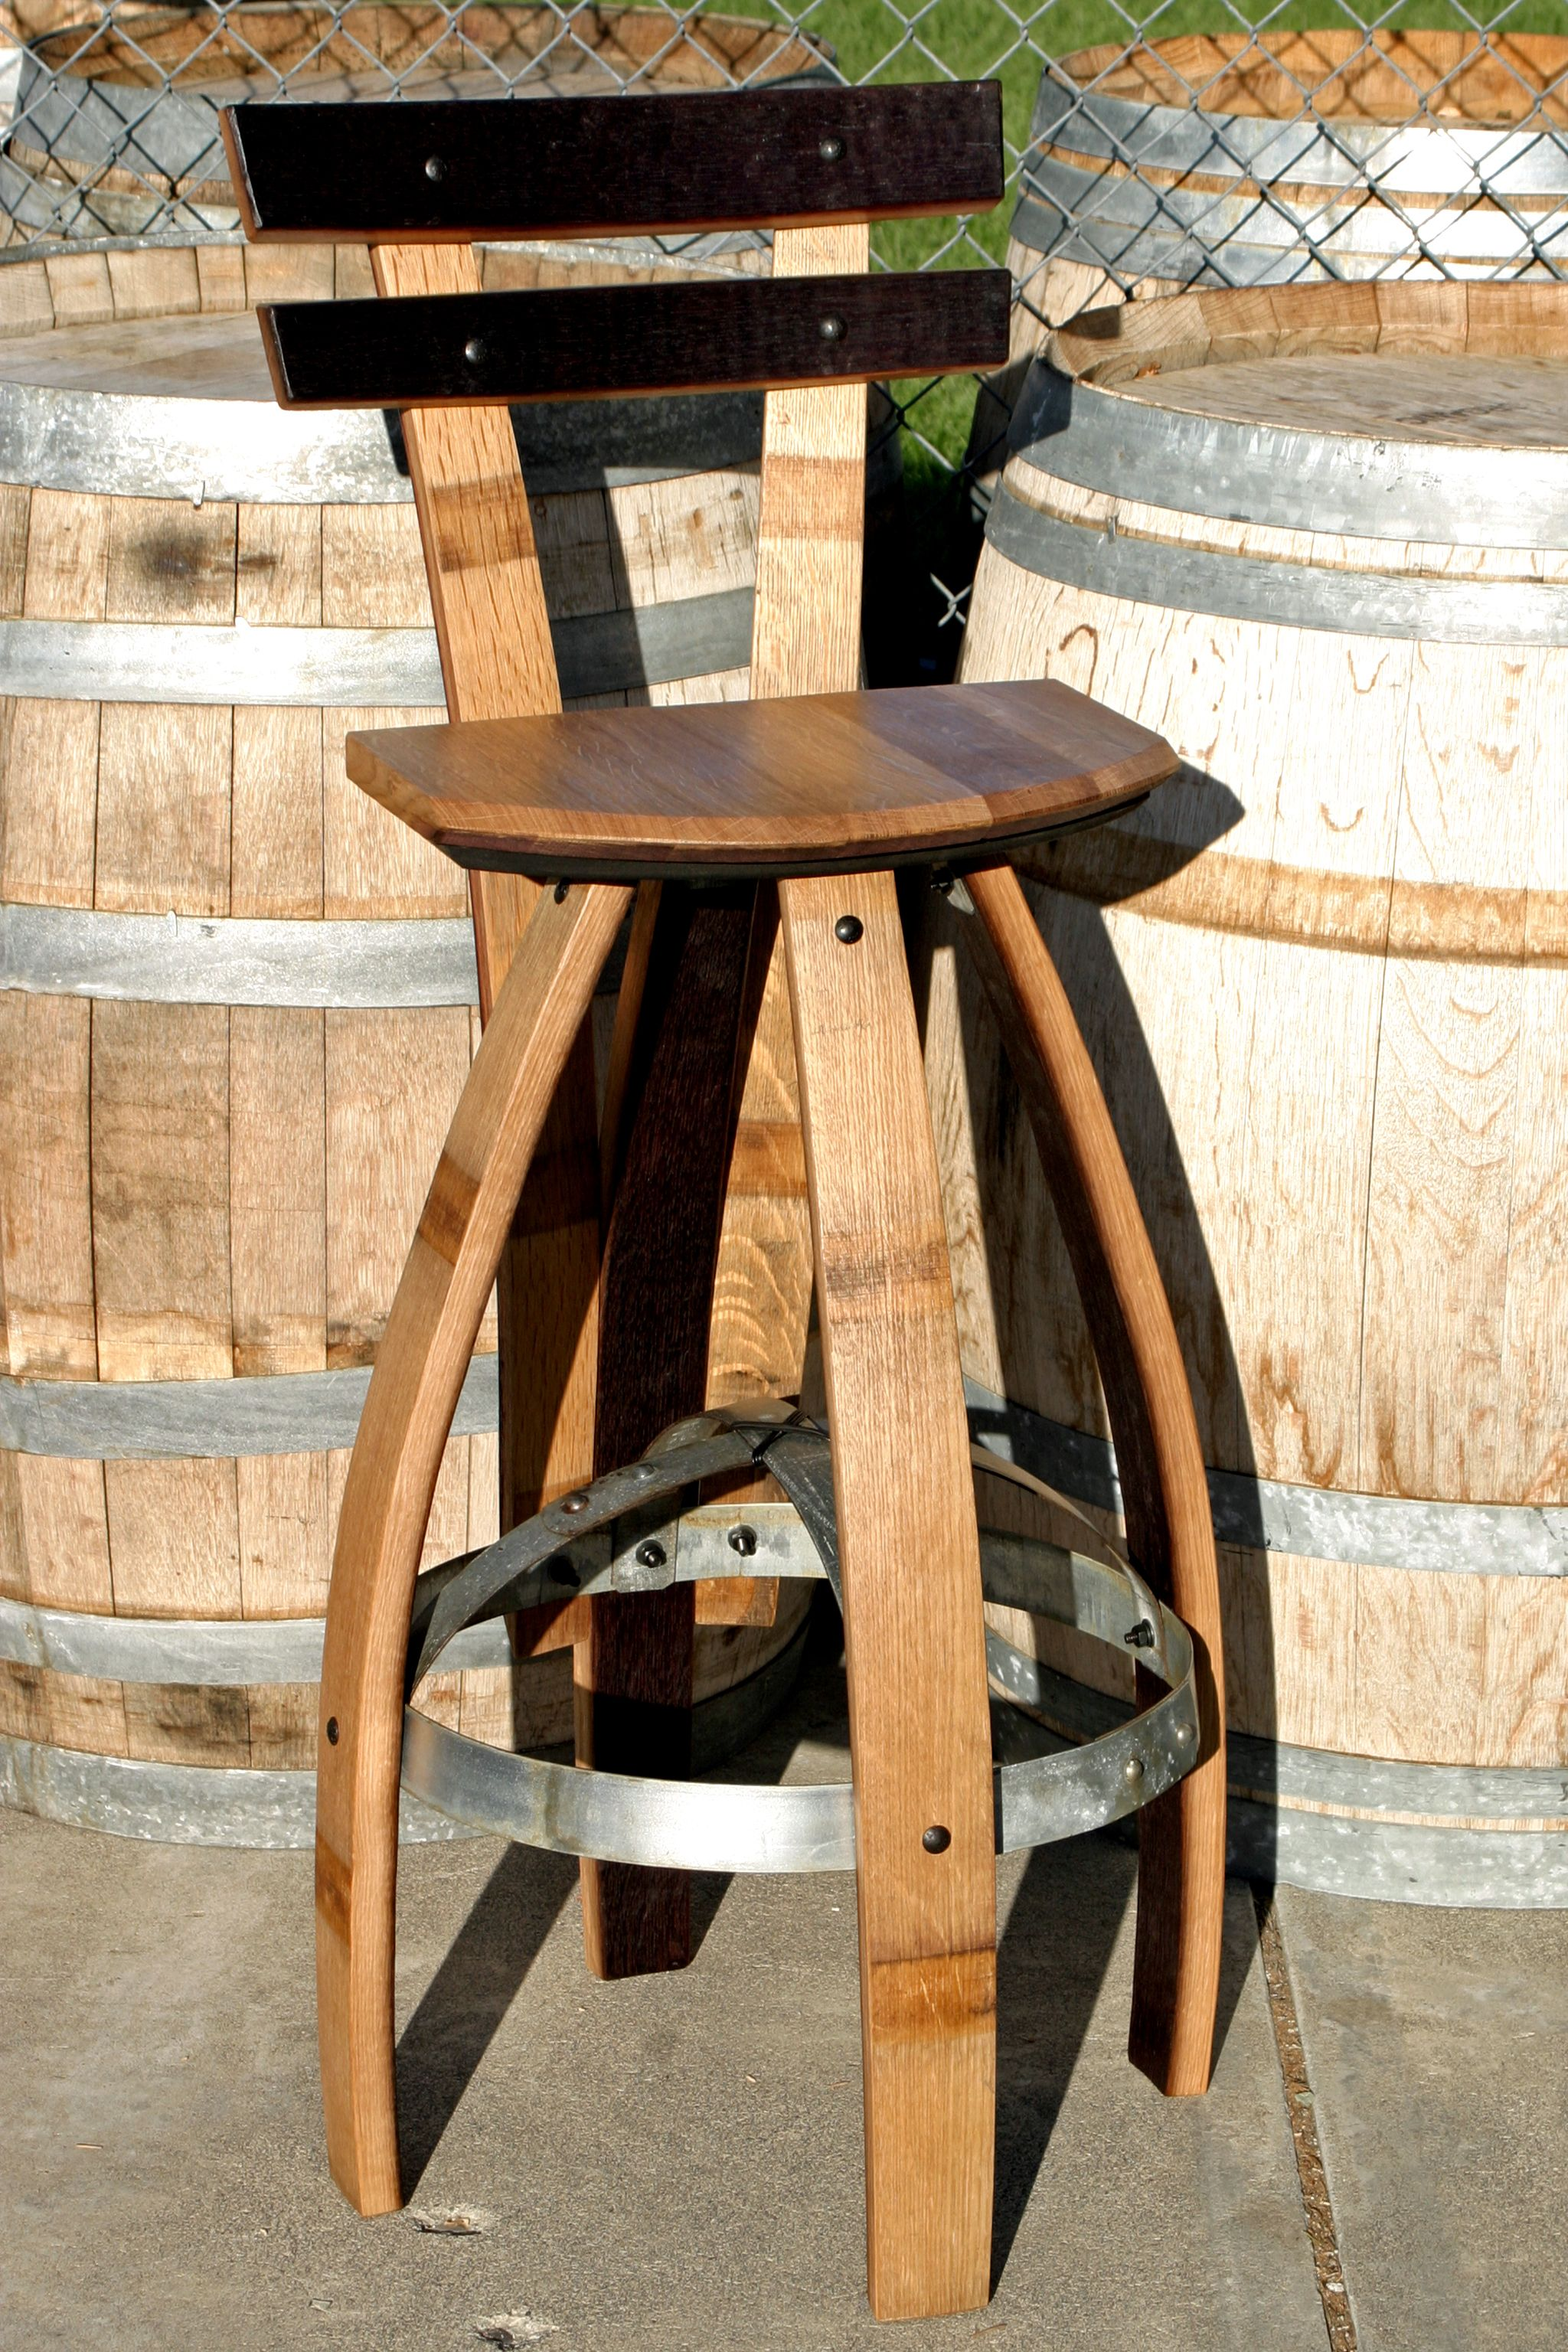 Our Bar Stools Now Have Backs The Natural Curve Of Wine Barrel Stave Provides Complete Comfort Choose Either 18 Dining Height 24 Counter Or